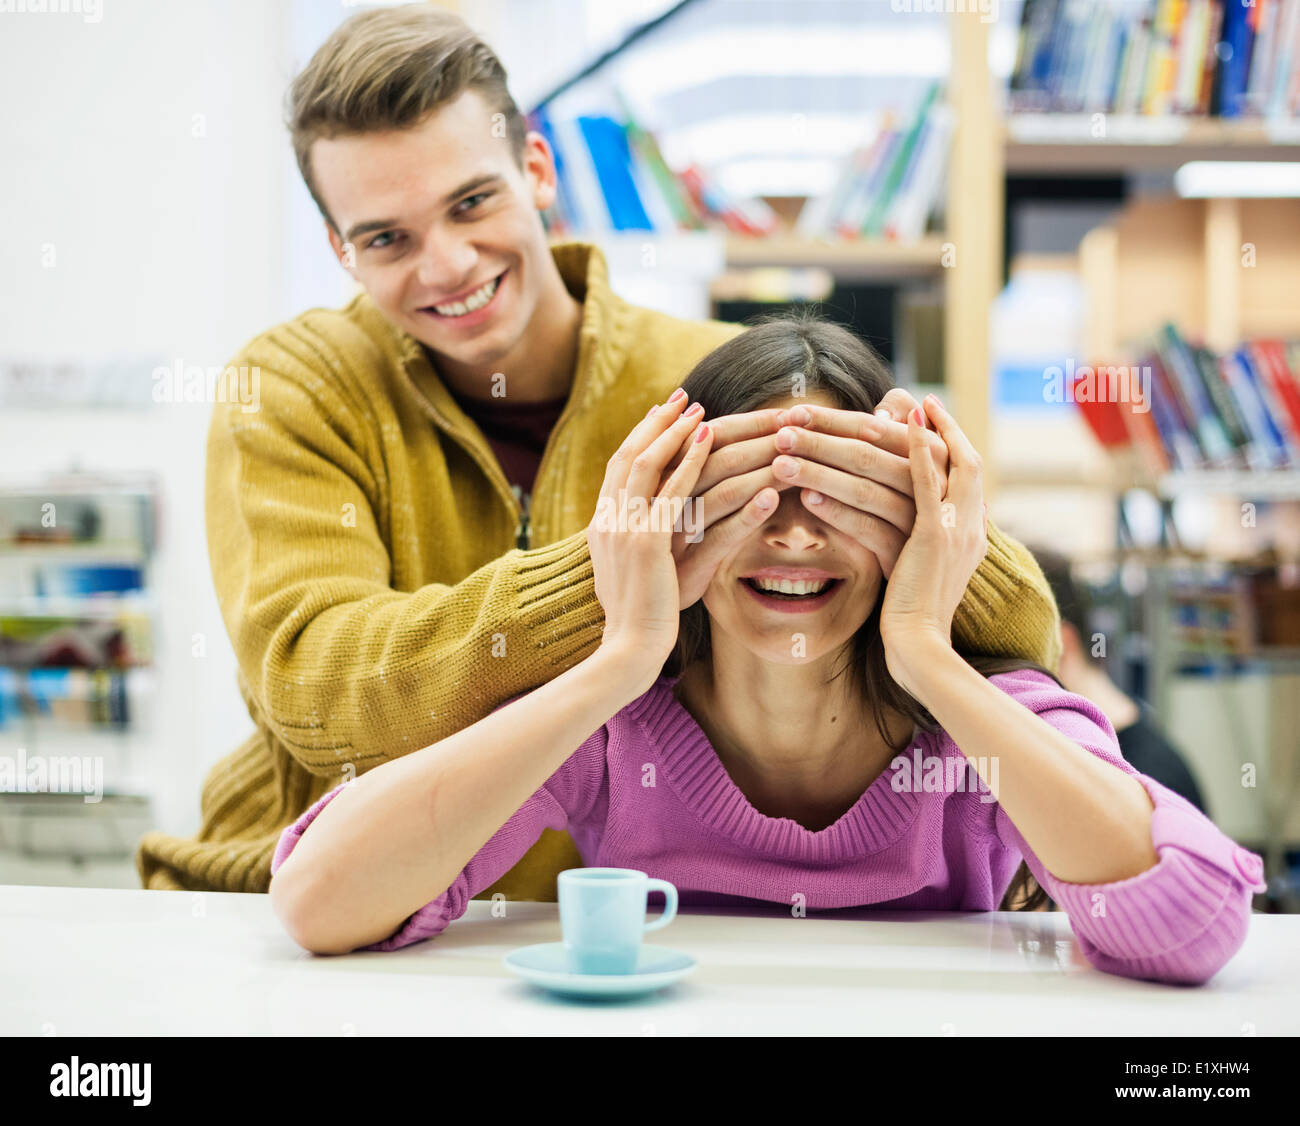 Playful young man covering woman's eyes in library - Stock Image